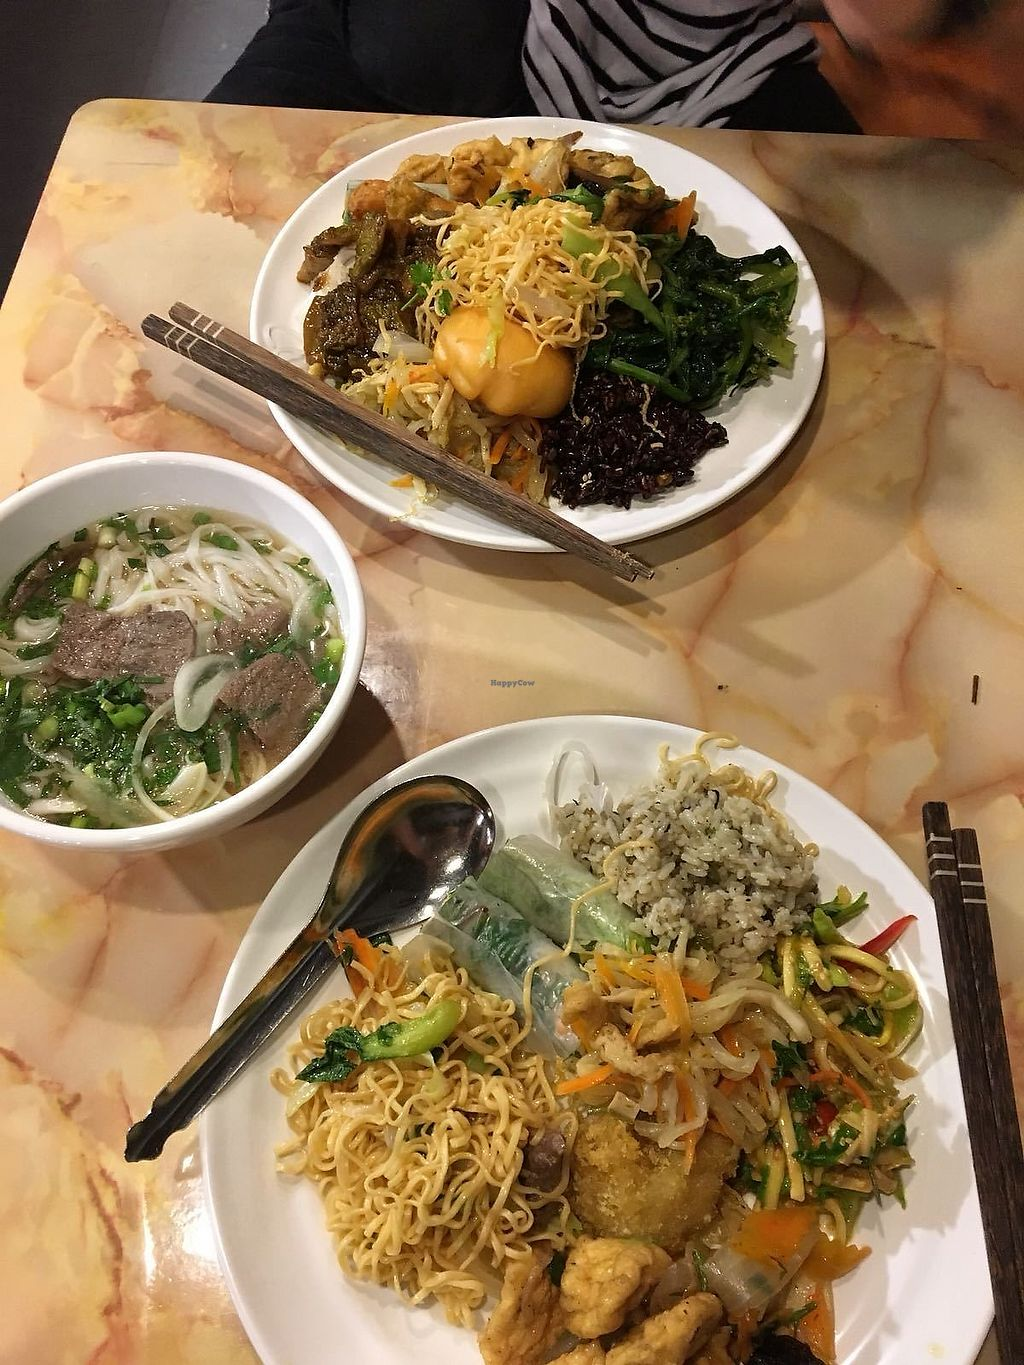 """Photo of An Lac Chay - Hoan Kiem  by <a href=""""/members/profile/Ellisrosebttry"""">Ellisrosebttry</a> <br/>Fake 'beef' pho and buffet mix  <br/> March 3, 2018  - <a href='/contact/abuse/image/72337/366181'>Report</a>"""